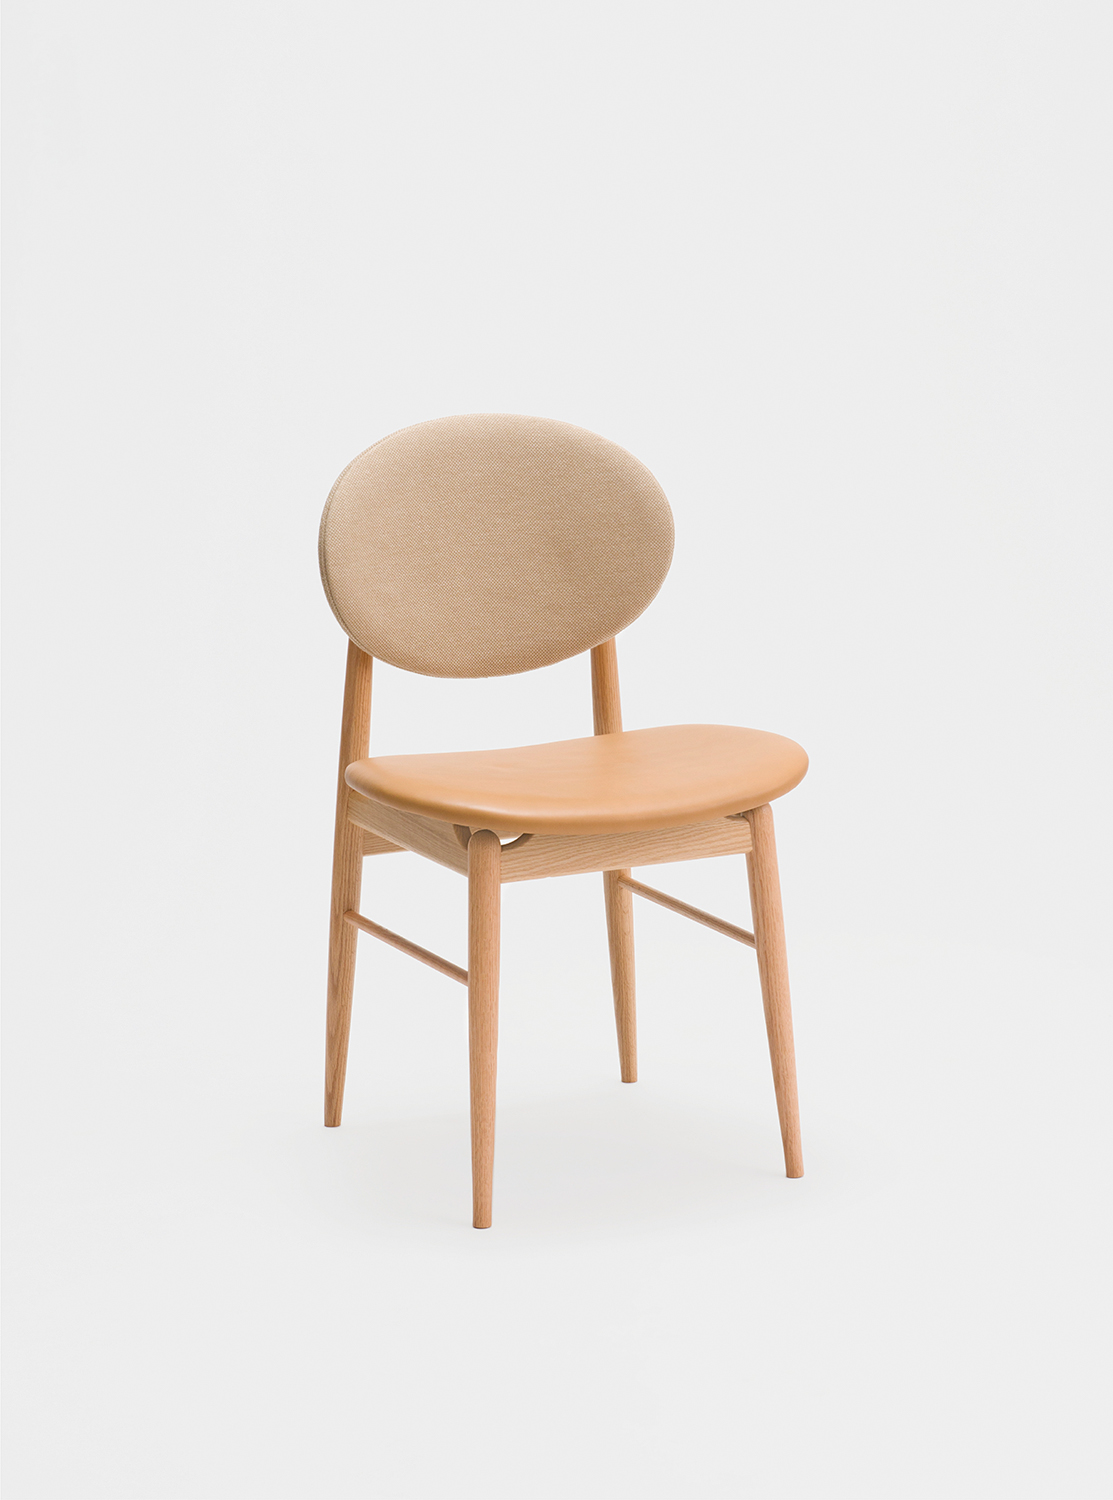 Ariake Outline Chair - Oak/Leather Seat & Fabric Back